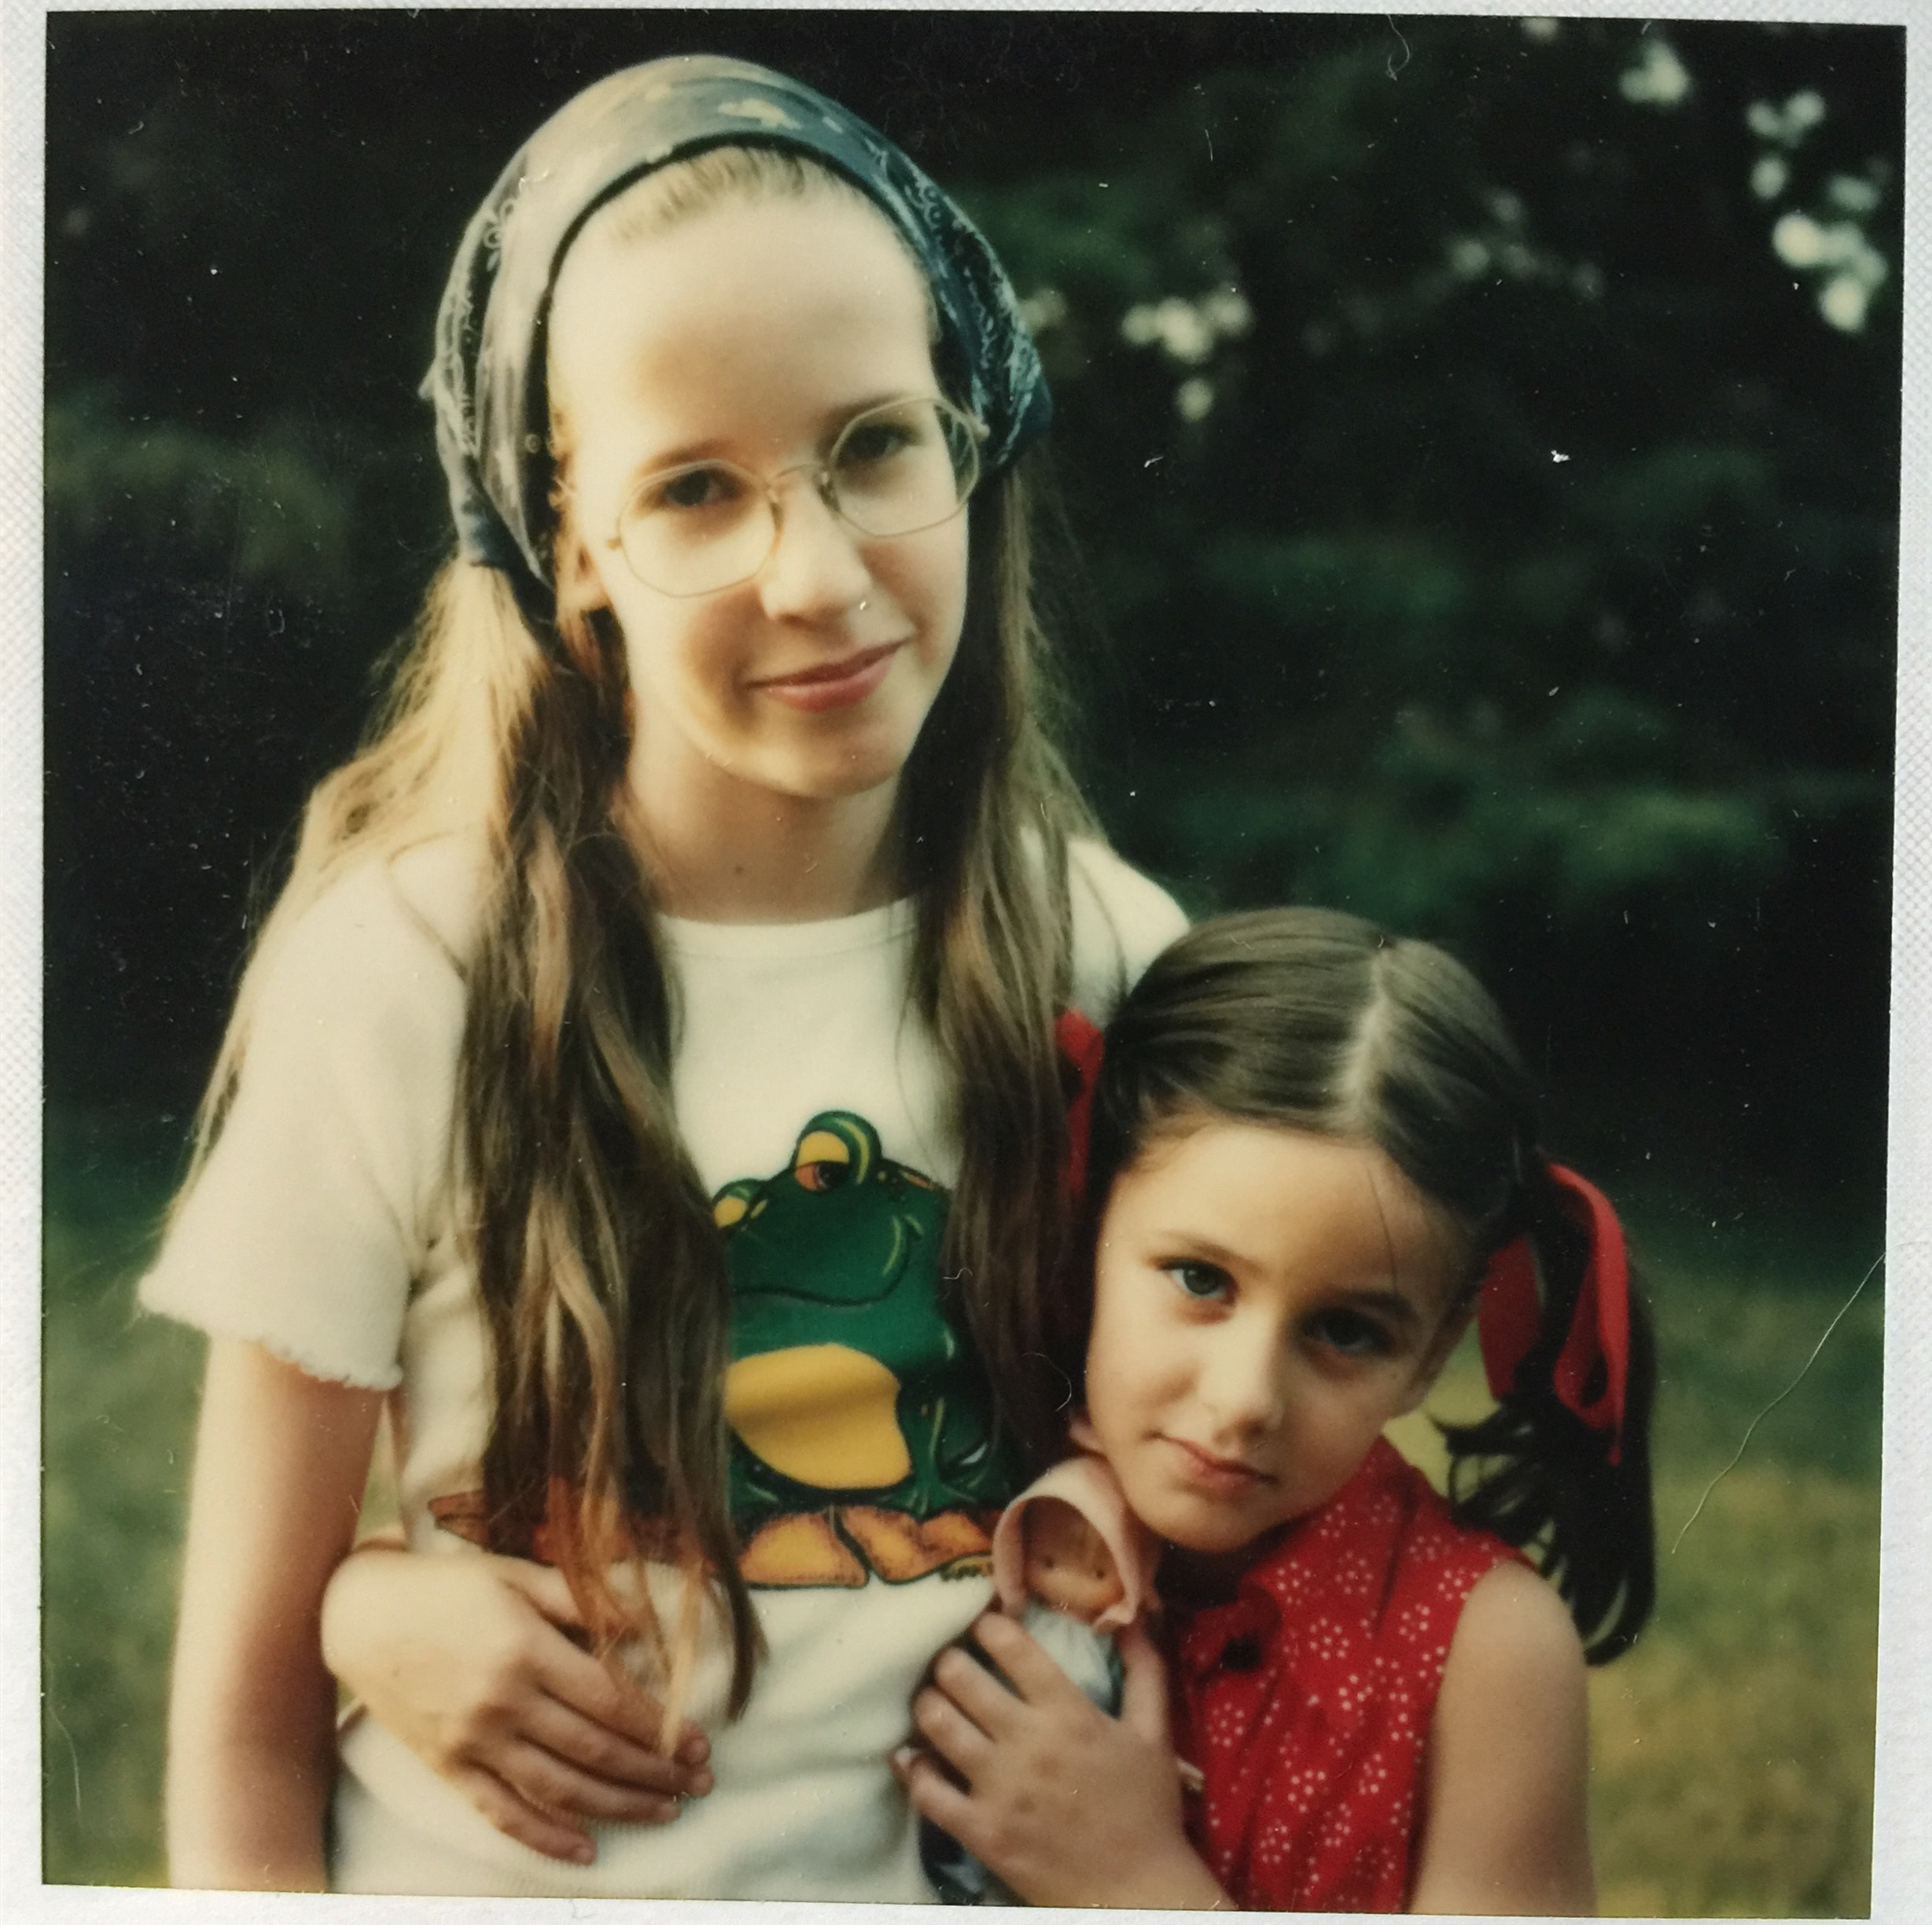 Me (left) and my little sister Molly in the 1970s.  We had to go outside to play in the summer (no air conditioner in the house) provided we showed up back at home around 6:40pm for dinner when my dad got home from work on the train.  If we didn't show up, Mom would call friends' houses or just drive around the neighborhood until she spotted us.  No cell phones.  Like animals.